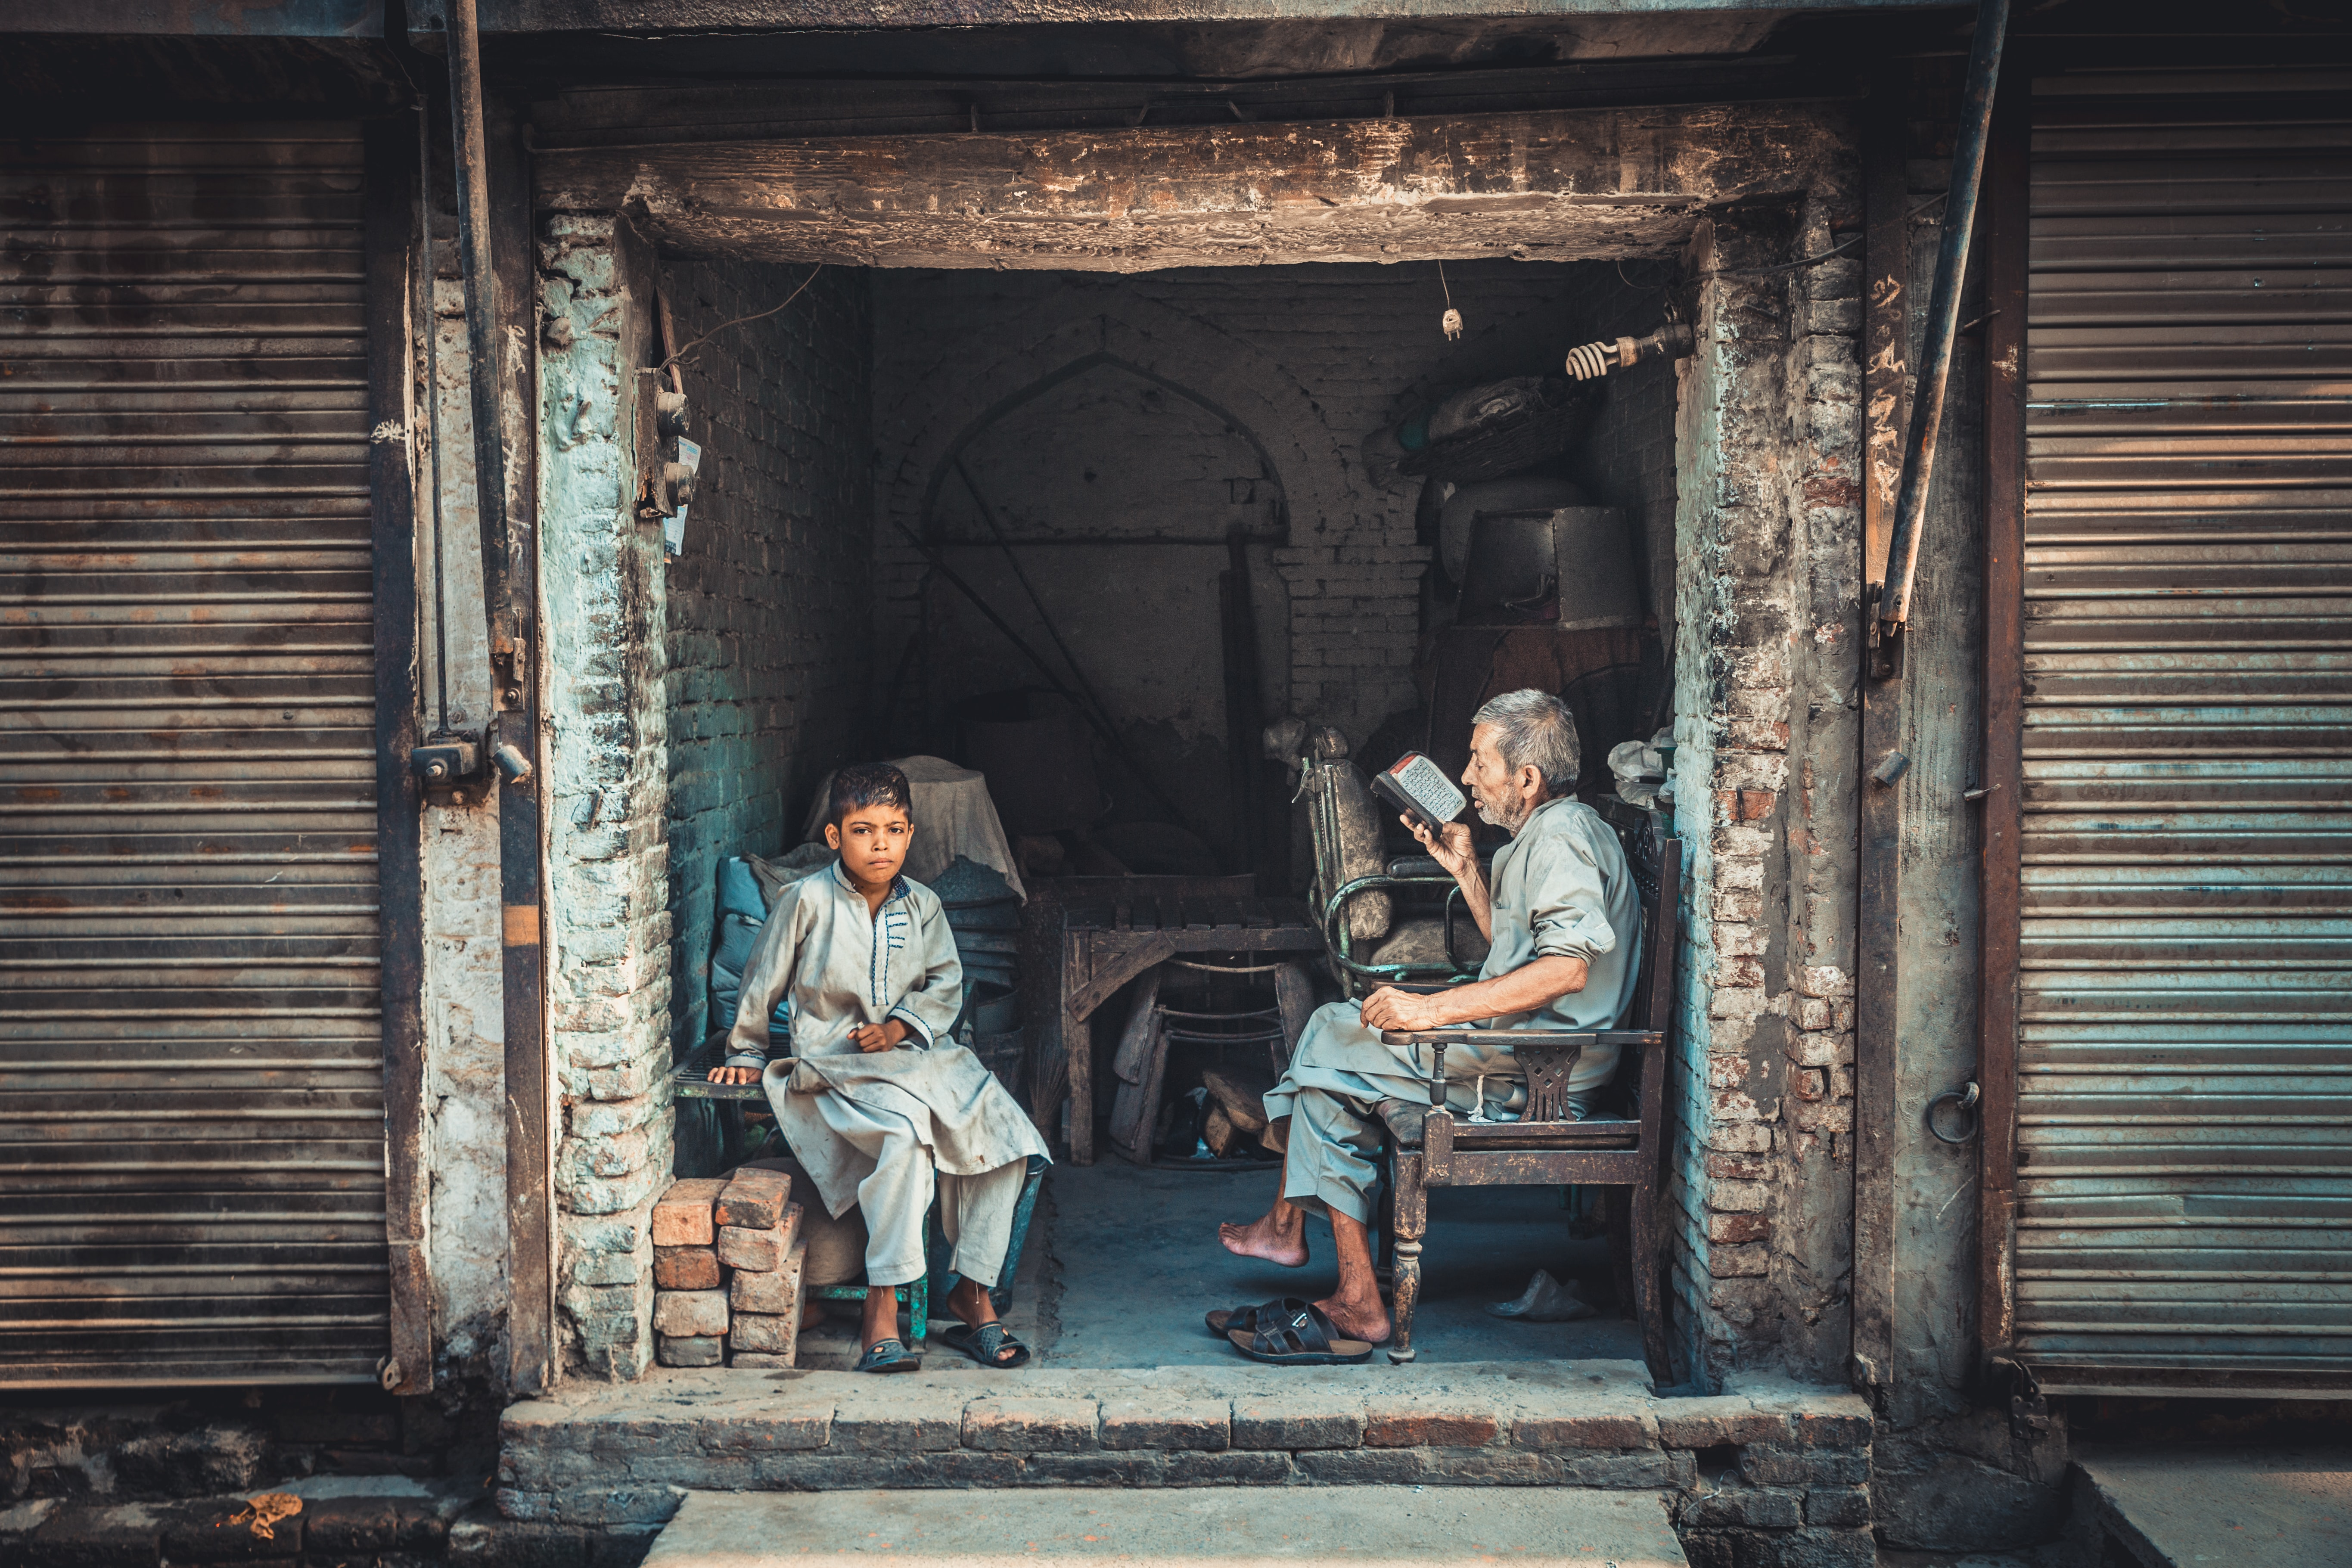 old man and boy sitting on chair